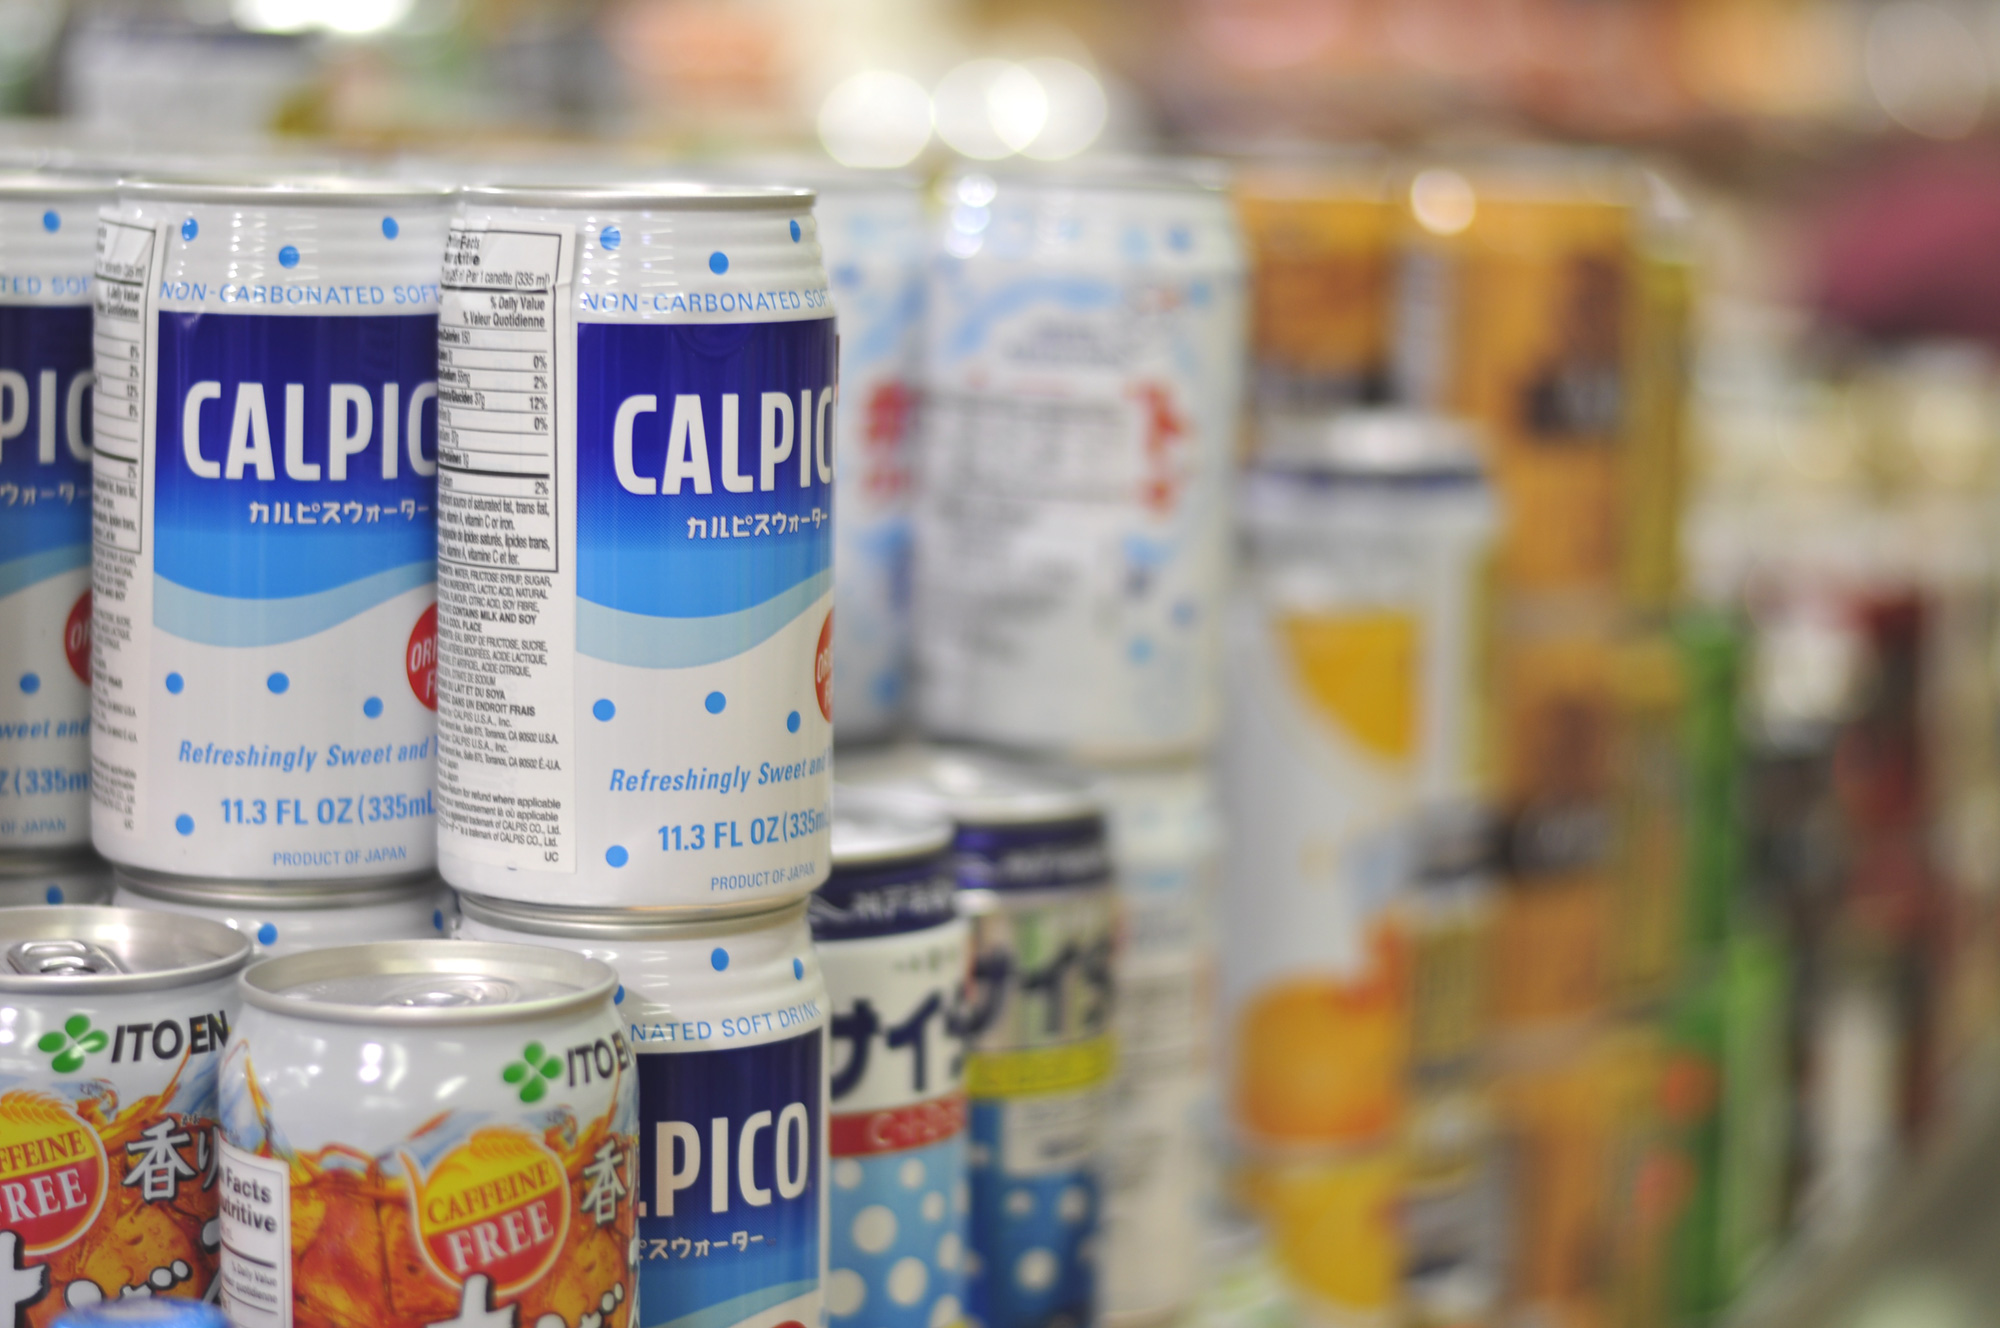 A variety of soft drinks from Japan are also available at J-Town.